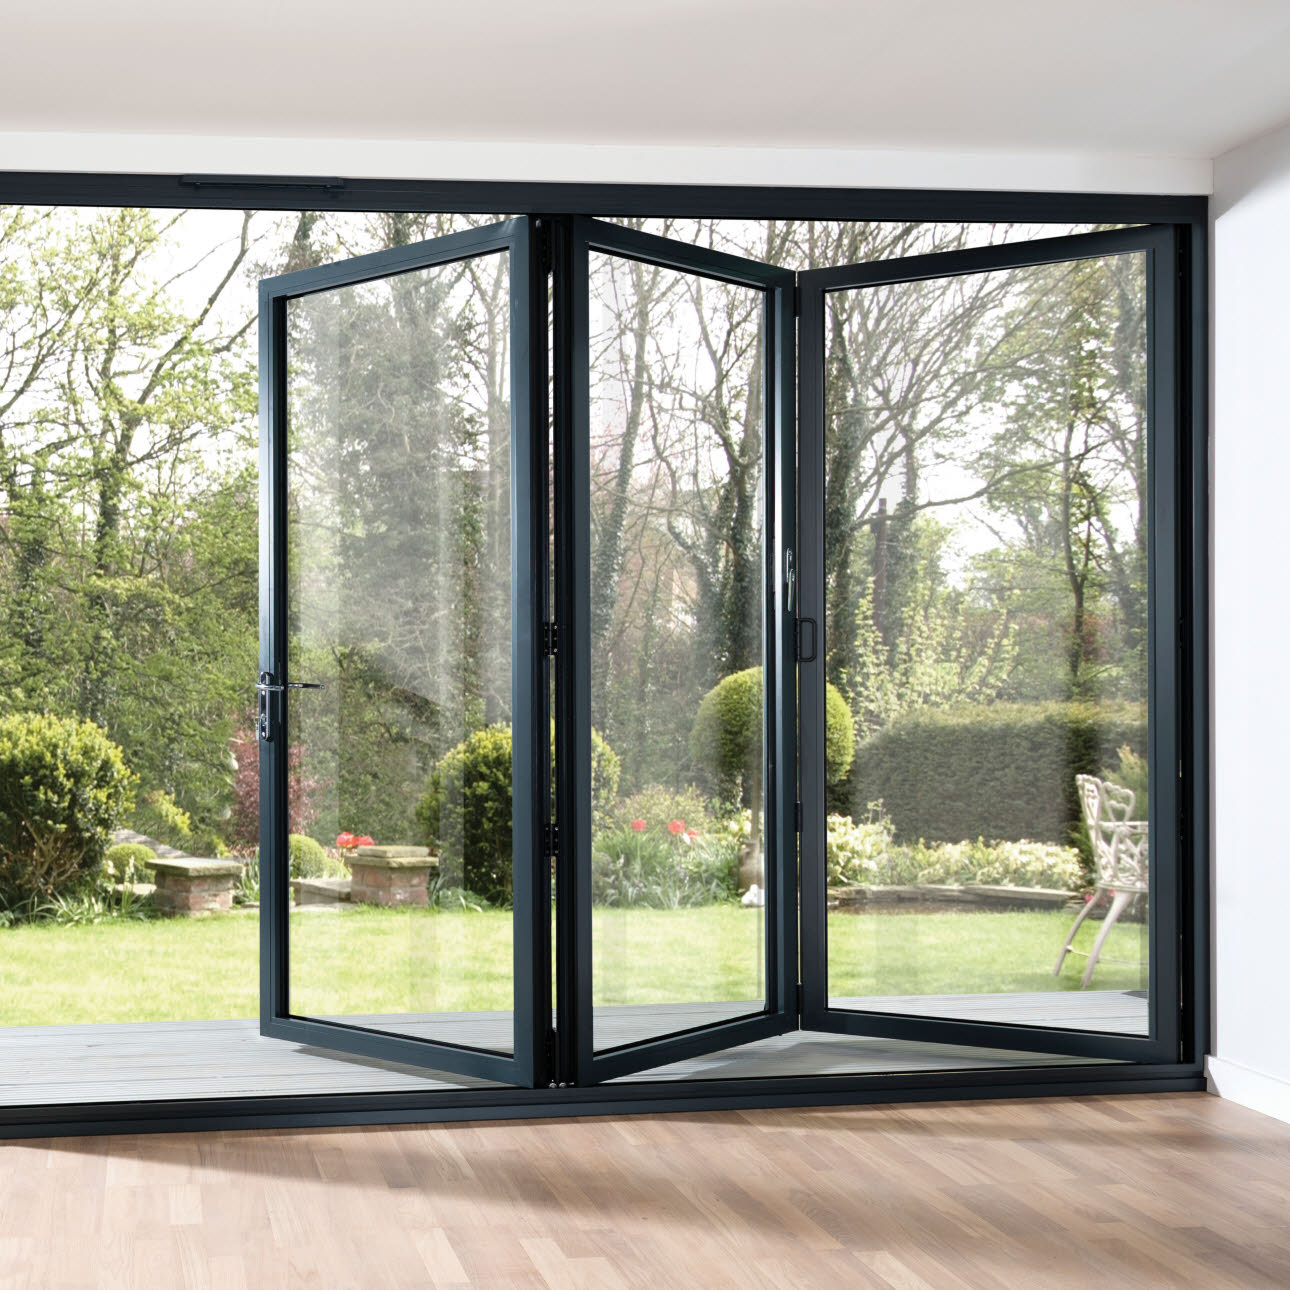 Image of: Patio Door Ideas Bifold